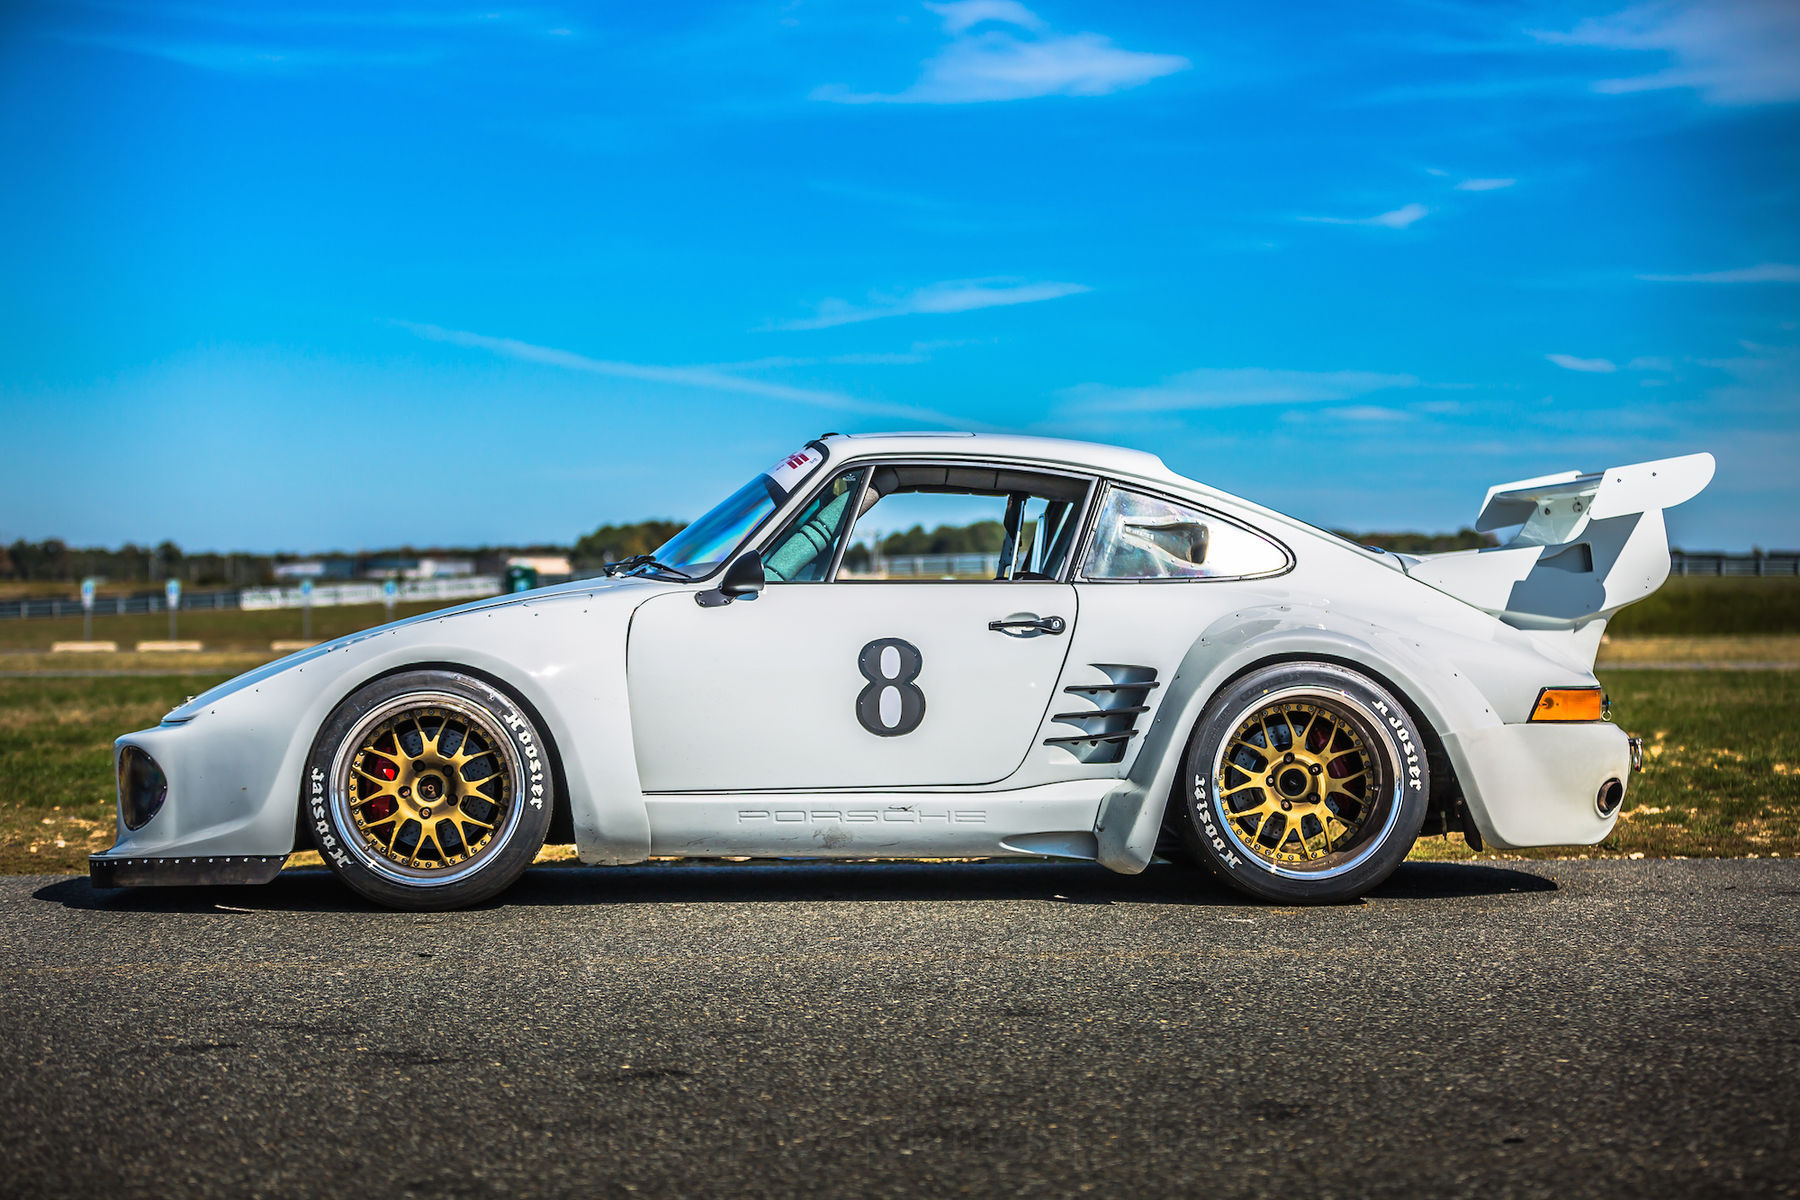 1983 Porsche 911 | Mick Cote's Porsche 911 Turbo Slant Nose on Forgeline WC3R Wheels